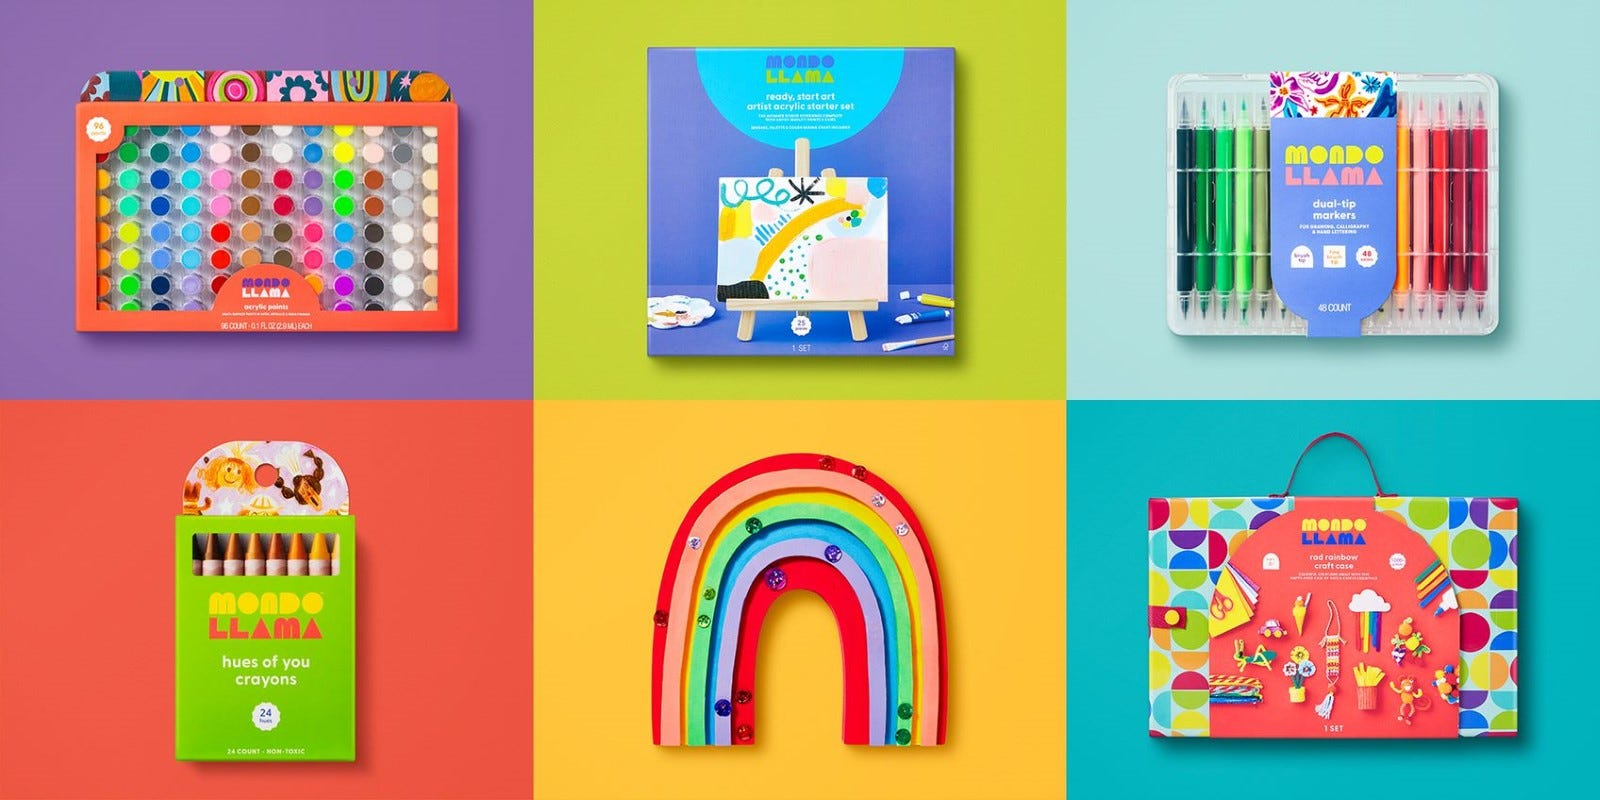 Target launches Mondo Llama arts and crafts brand as crafting grows amid COVID pandemic